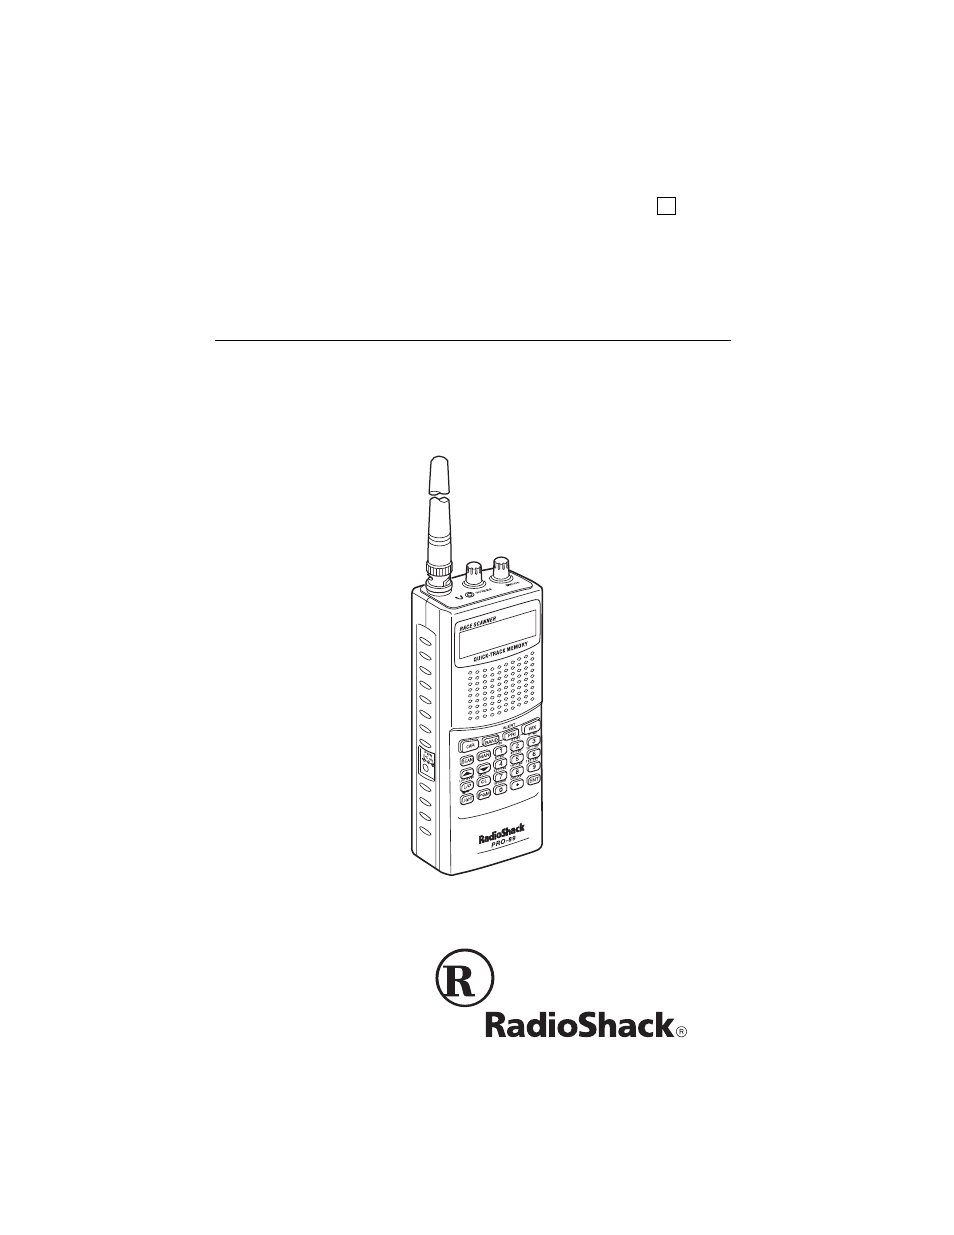 radio shack pro 89 user manual 64 pages rh manualsdir com Radio Shack Race Scanner Manual radio shack pro-89 race scanner manual